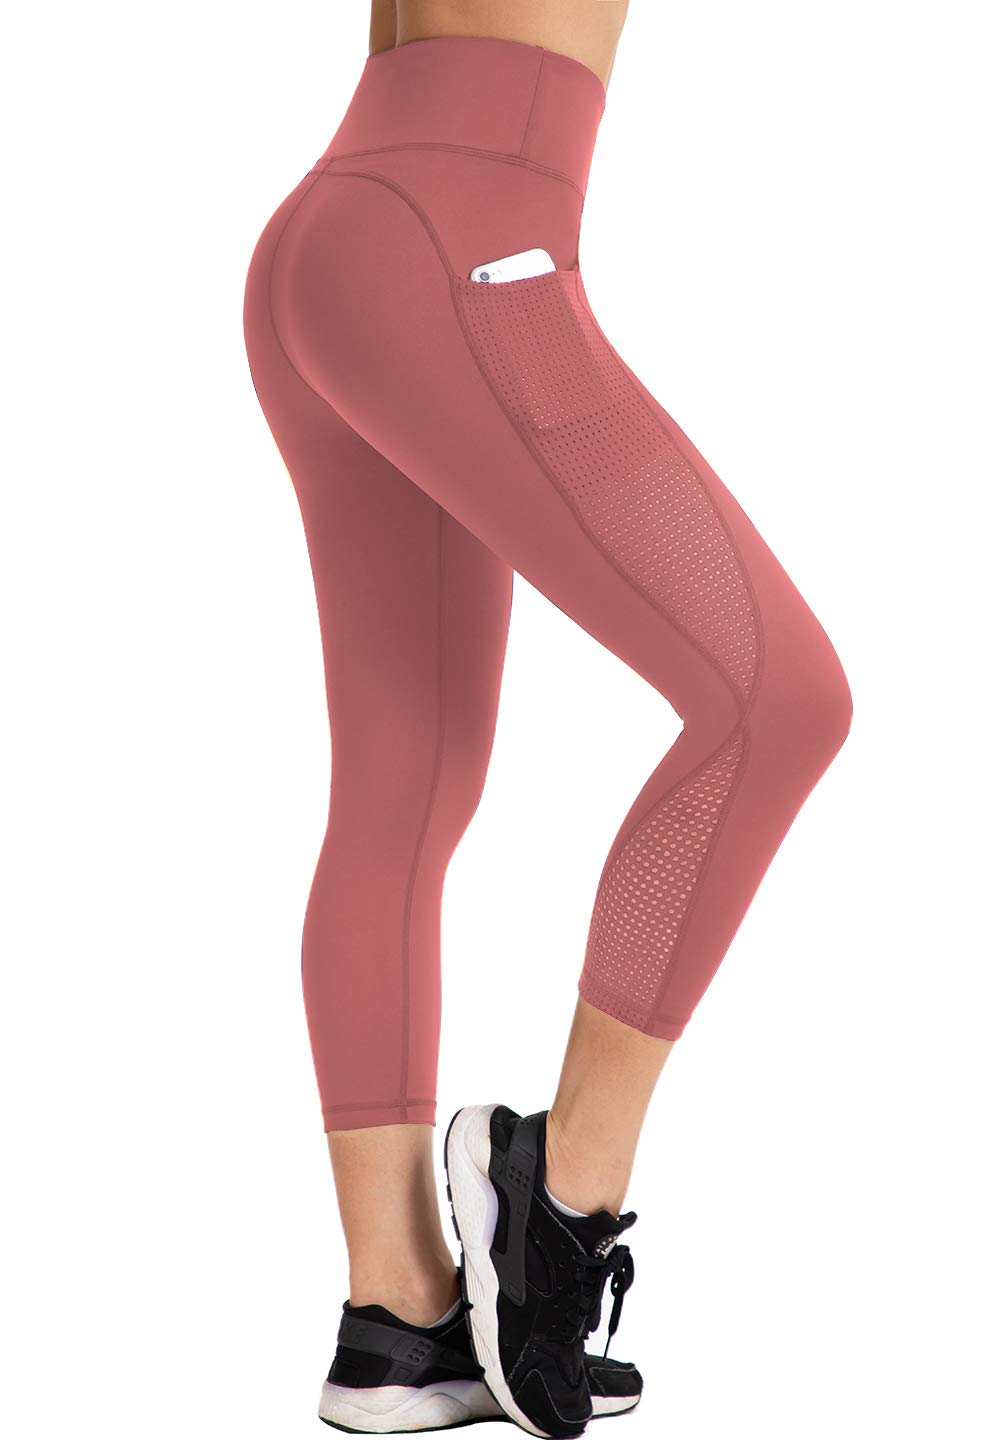 UURUN High Waisted Yoga Pants Capri Workout Leggings for Women with Pockets Tummy Control Non-See-Through Mesh Running Compression Capris for Fitness Gym Athletic Pink-S by UURUN